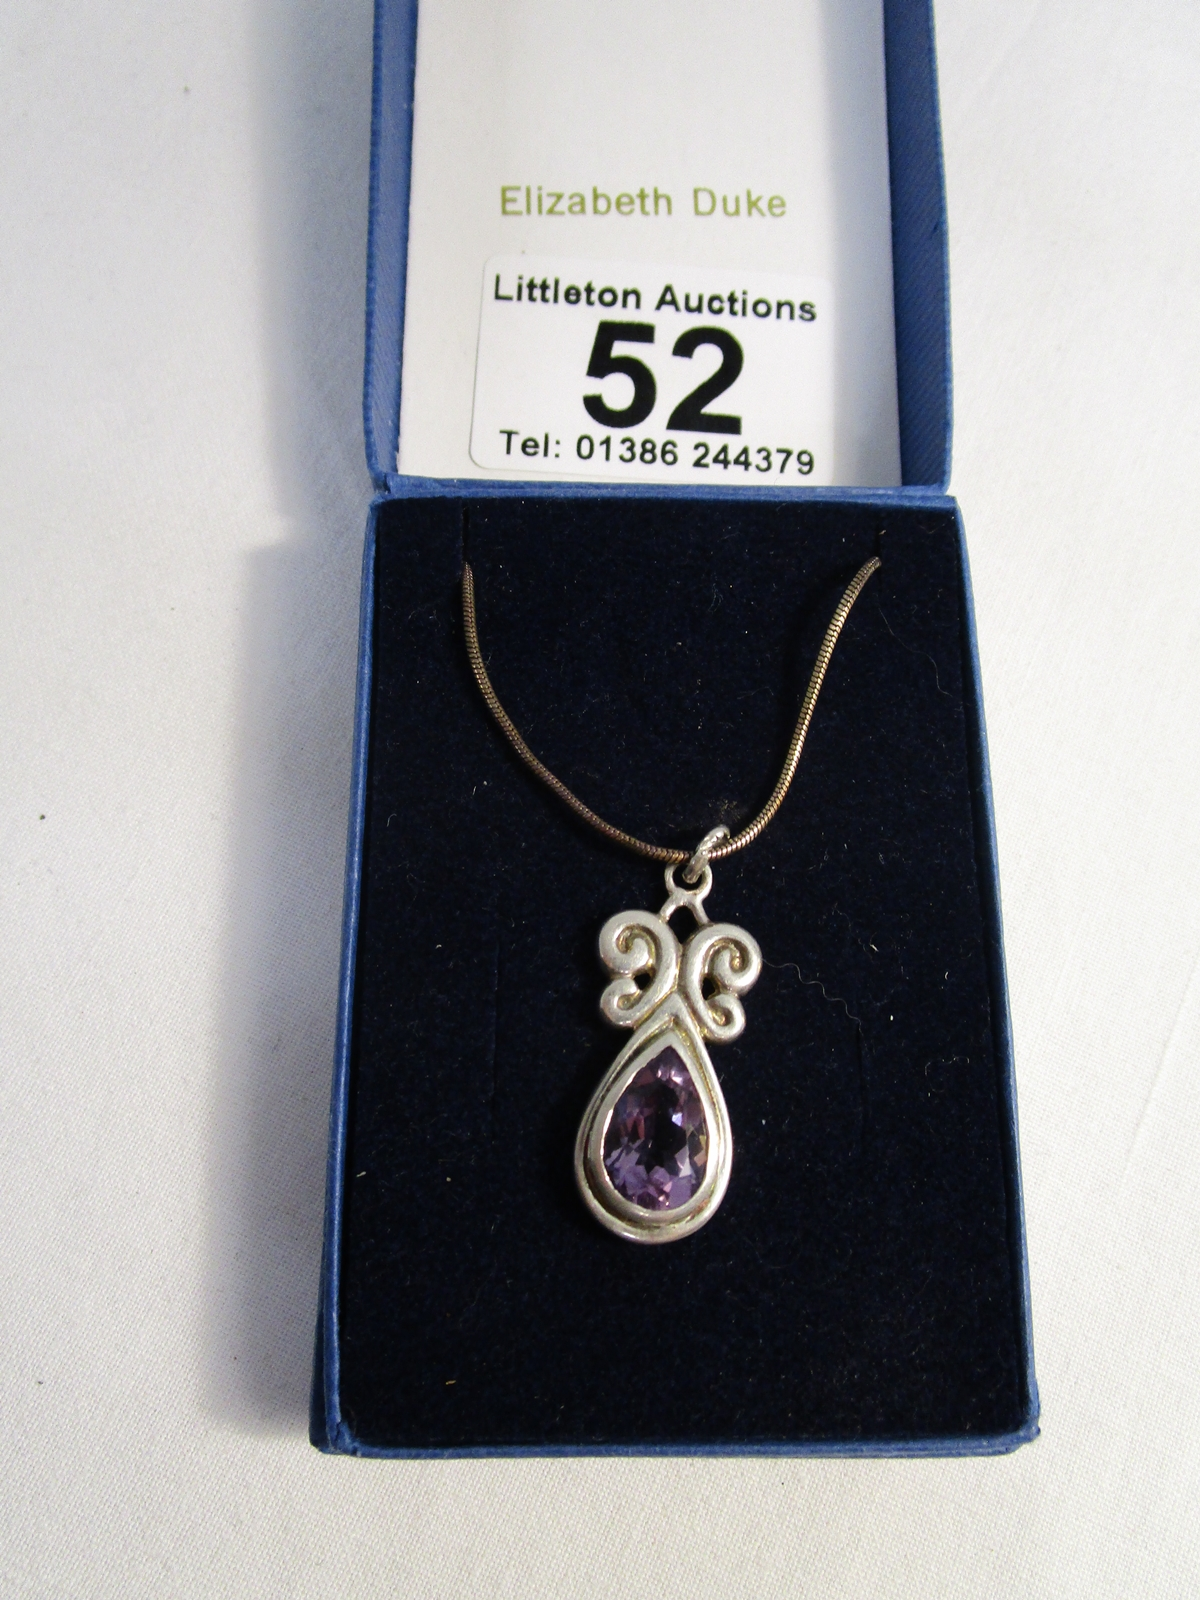 Lot 52 - Silver & amethyst pendant on chain